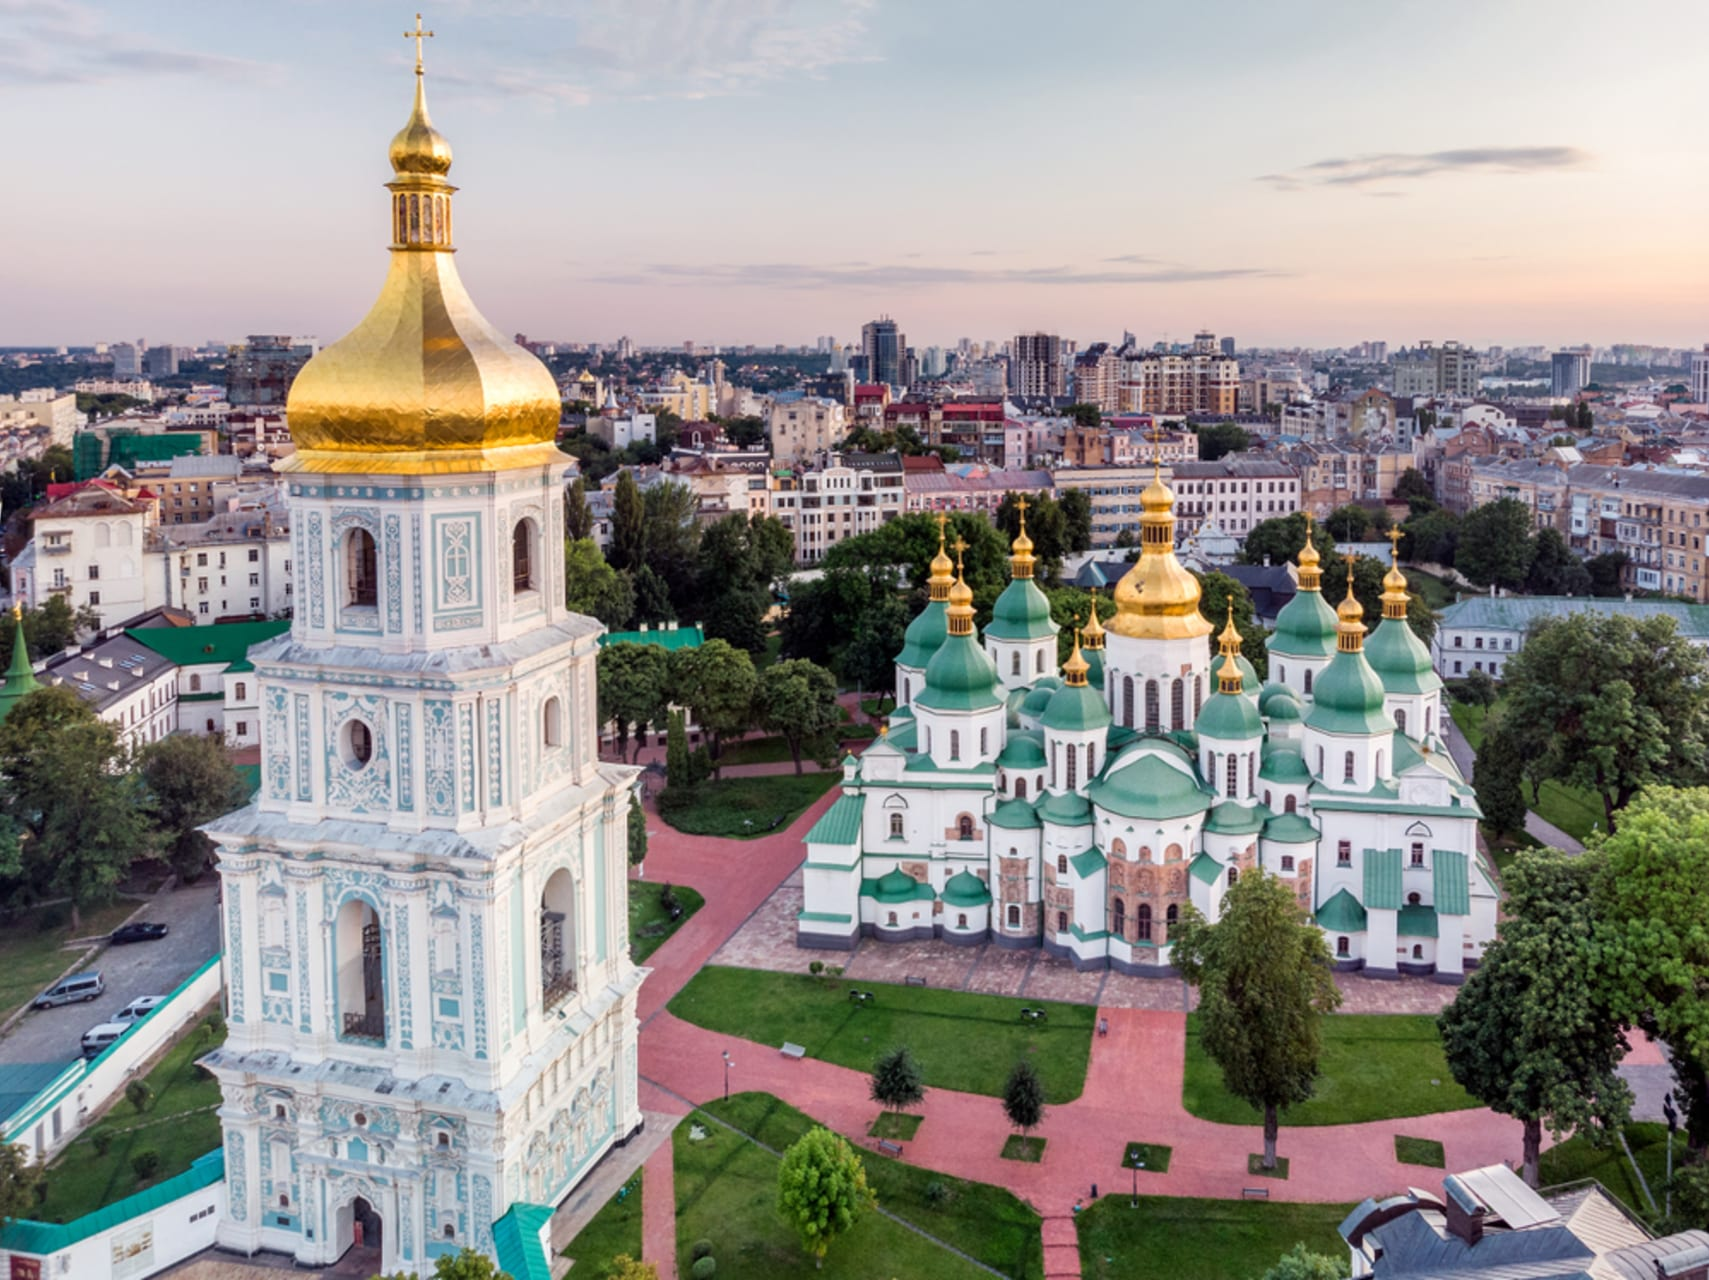 Kyiv - Highlights of Ancient Kyiv. 1000 Years of History Are Hidden here. Golden Gates and St Sophia Cathedral.